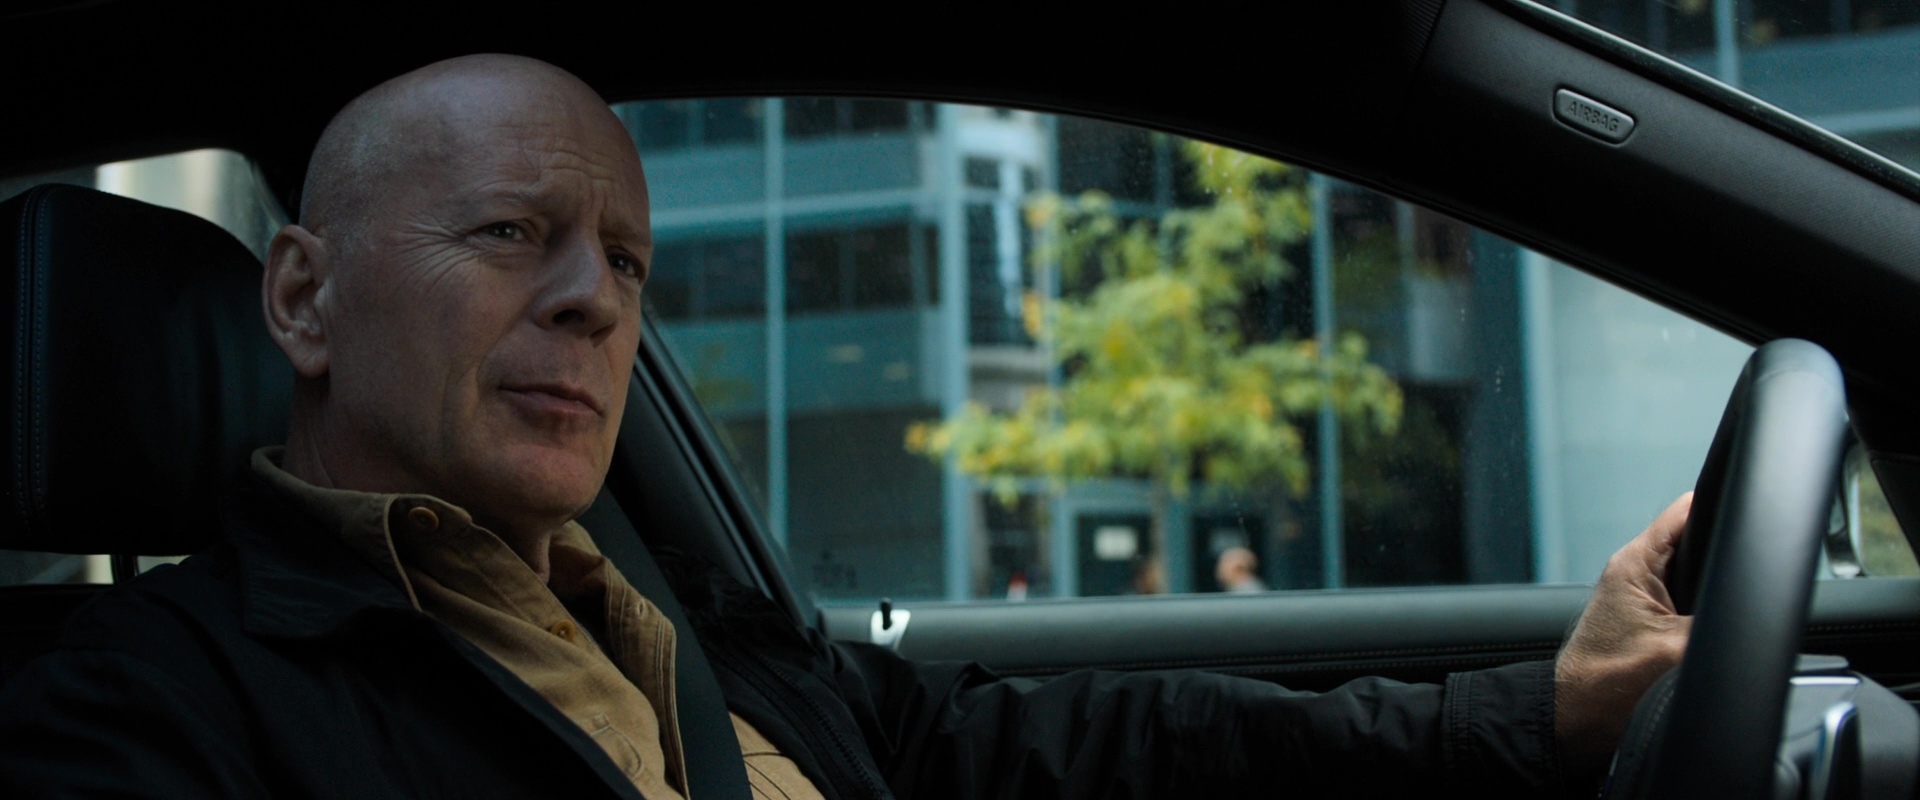 BMW 7 Series Car Used By Bruce Willis In Death Wish 2018 Movie